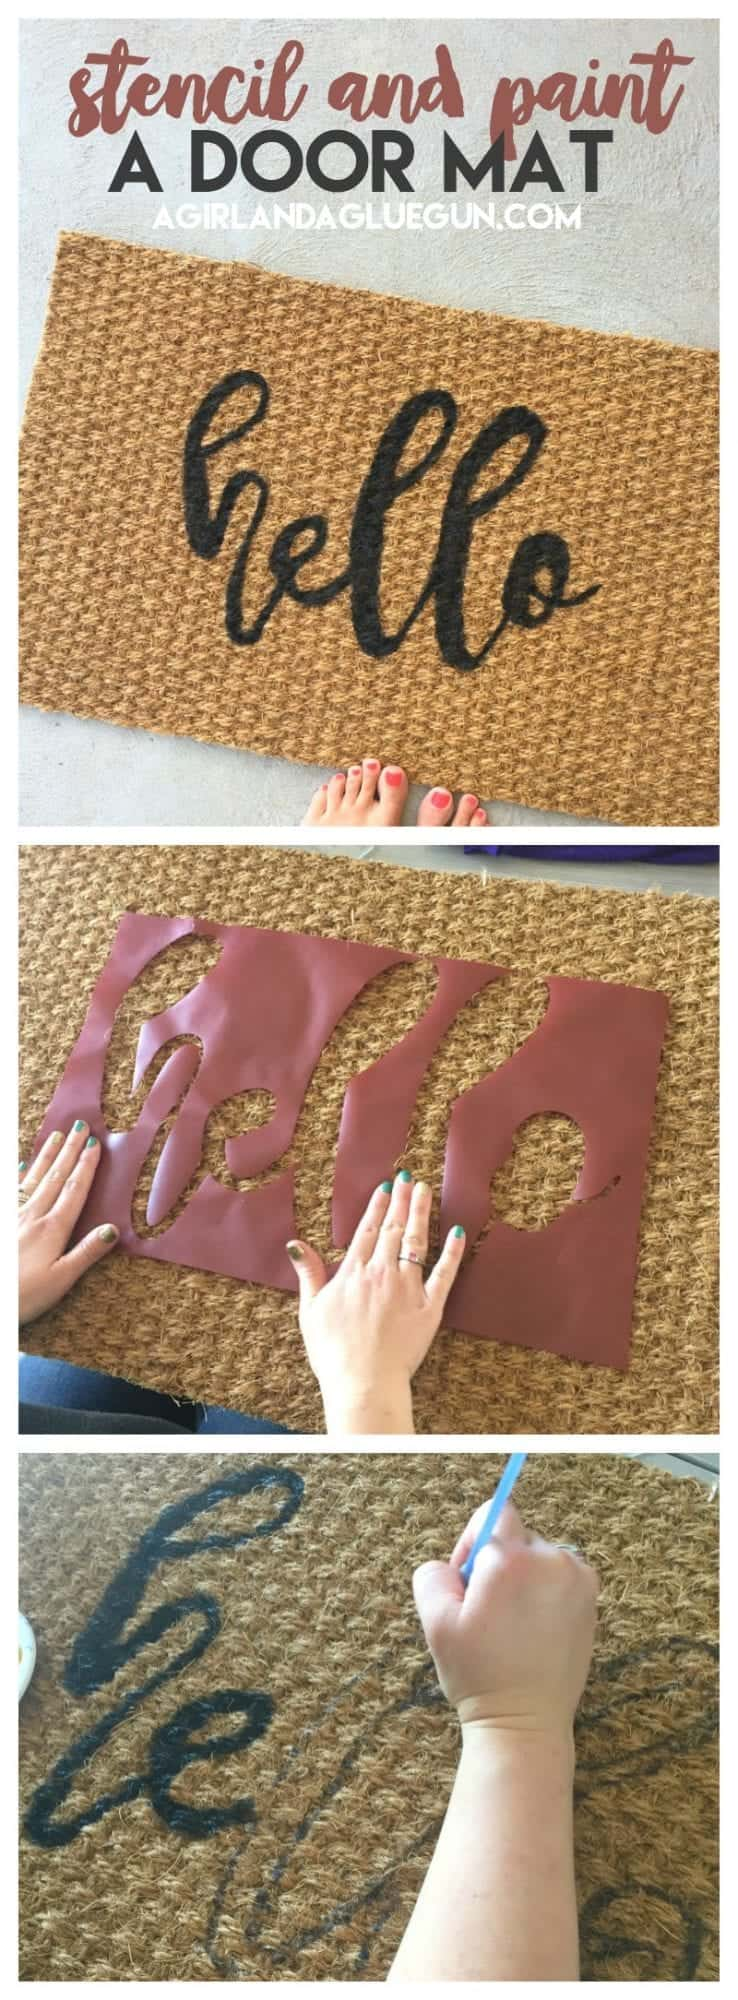 How To Stencil And Paint A Door Mat